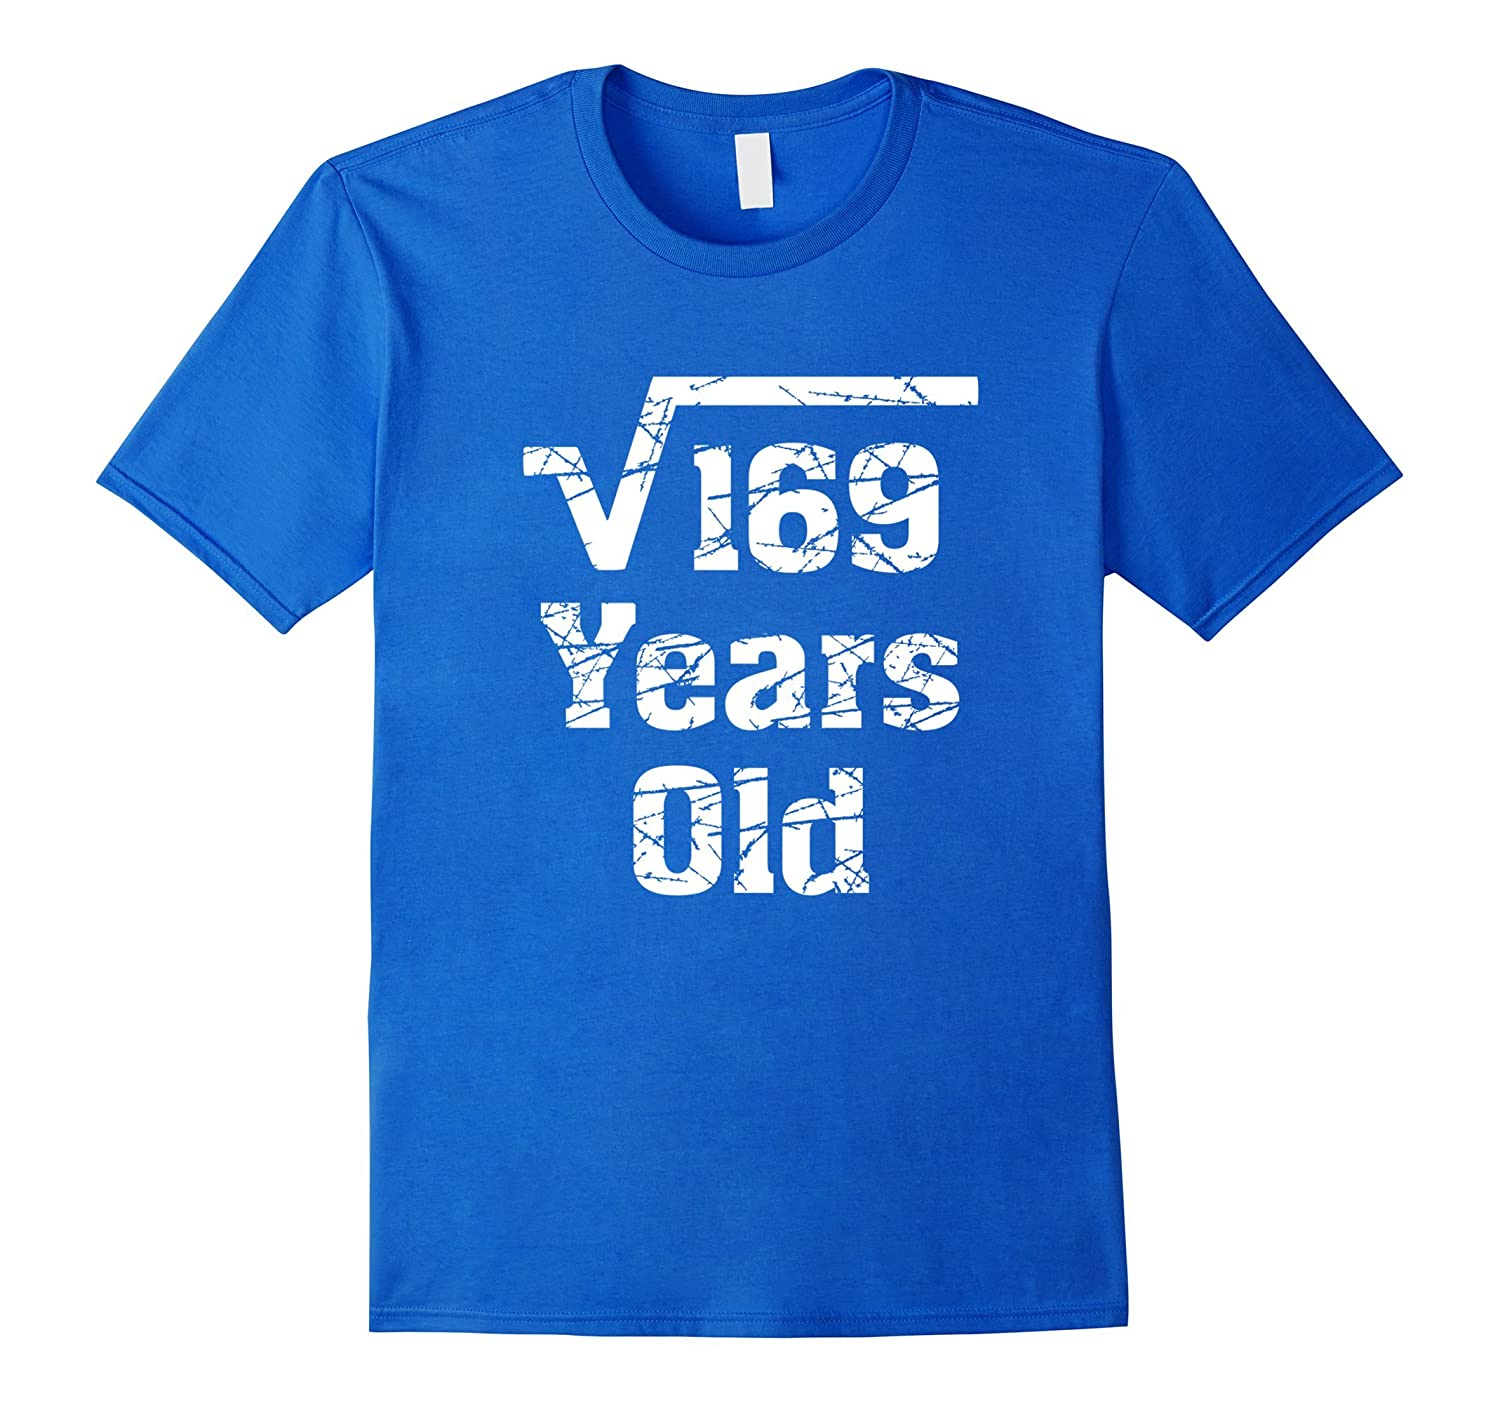 13 years old Birthday Gift Idea Square Root of 169 T-Shirt